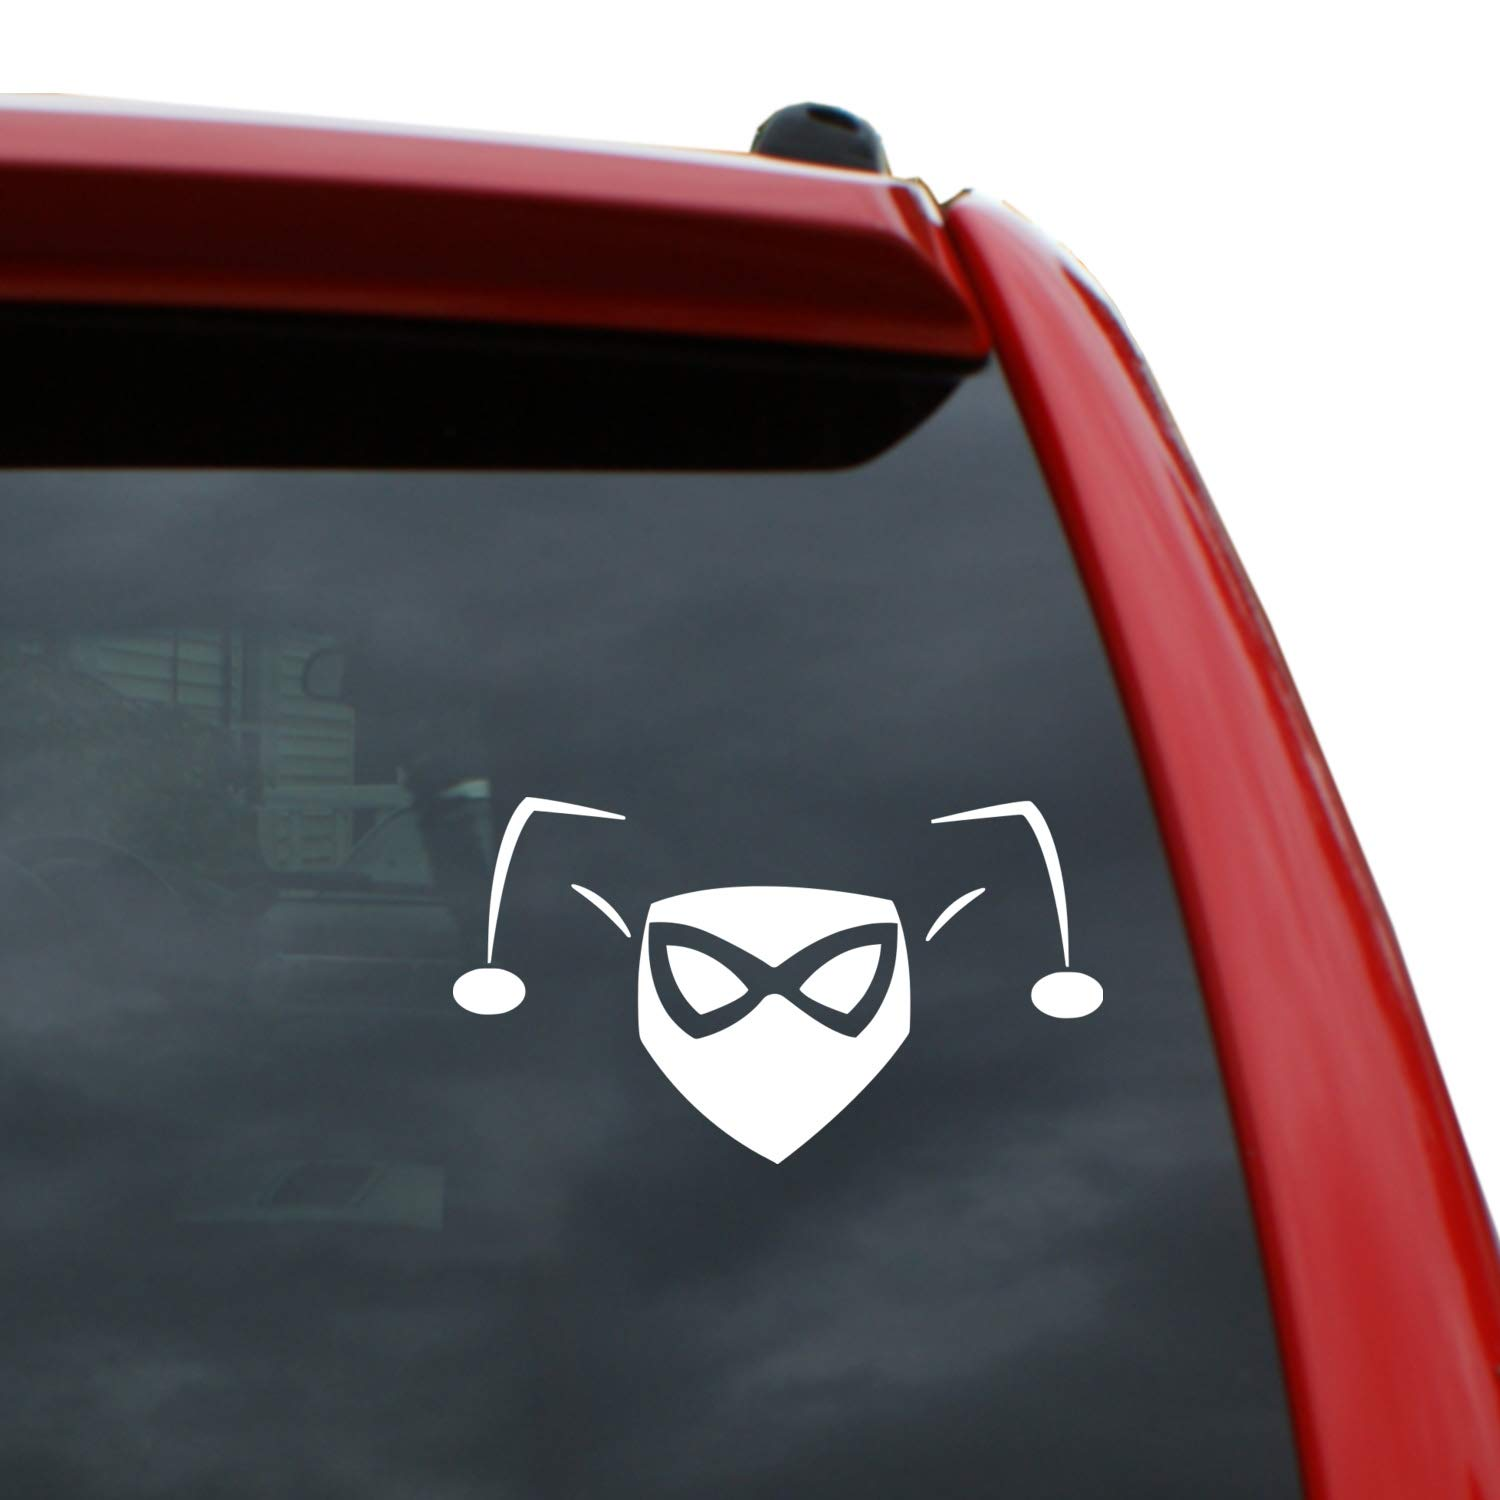 Amazon com harley quinn jester 5 x 2 8 vinyl decal window sticker for cars trucks windows walls laptops and more home improvement